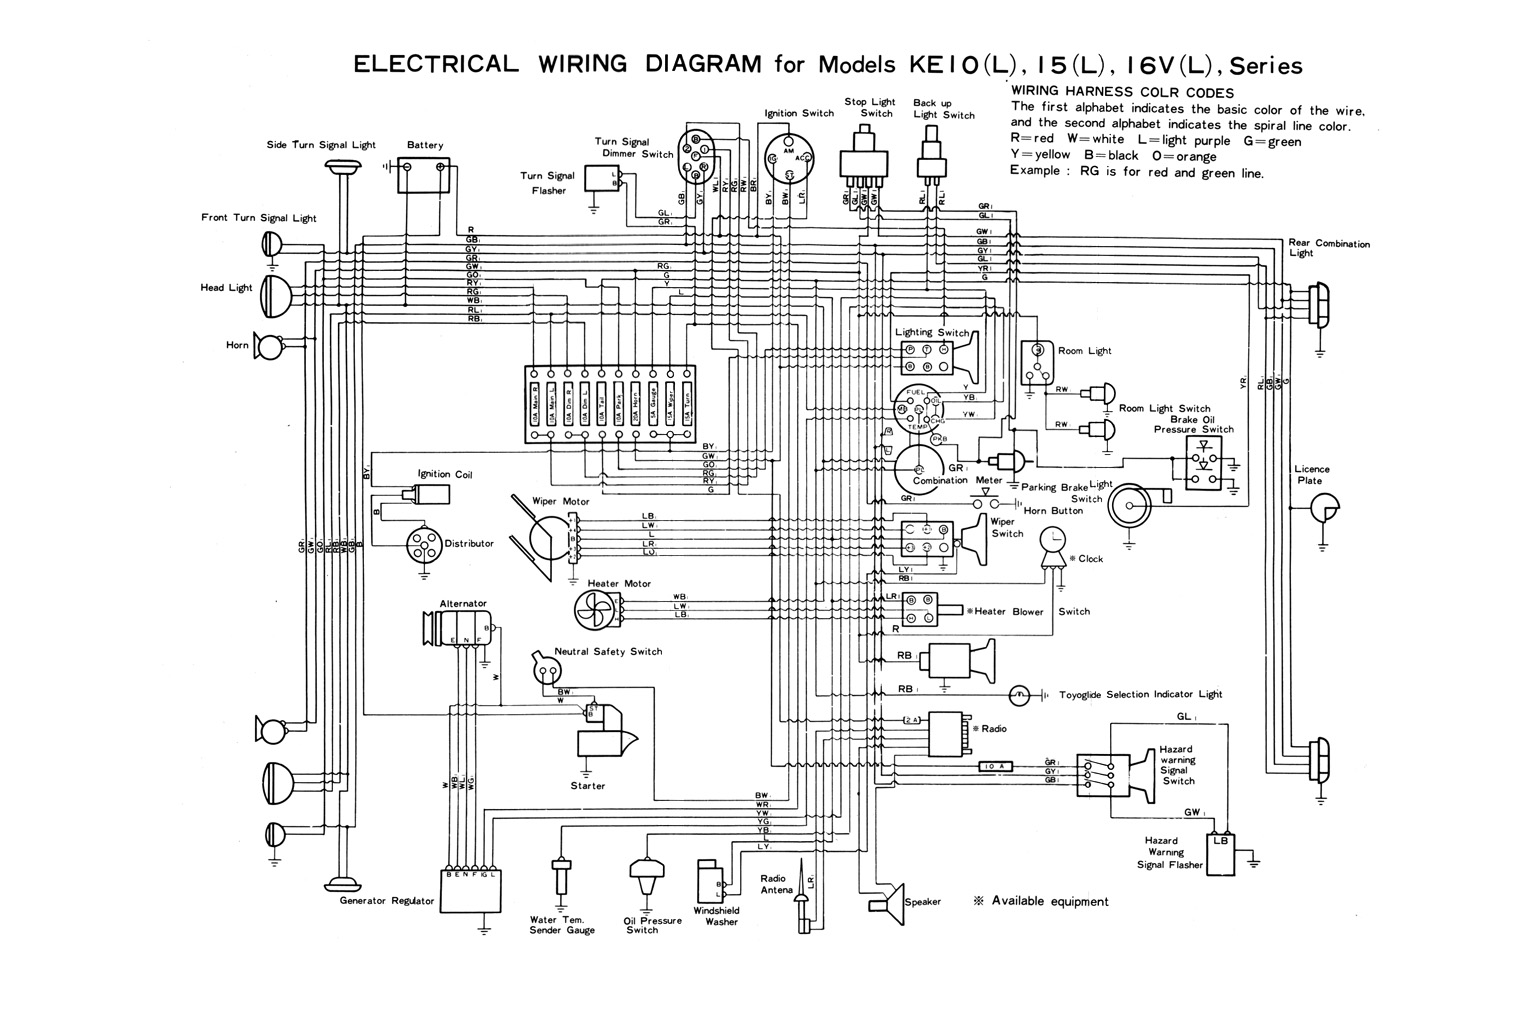 Wiring Diagram Kelistrikan Body Toyota : Toyota corolla service manual body page s